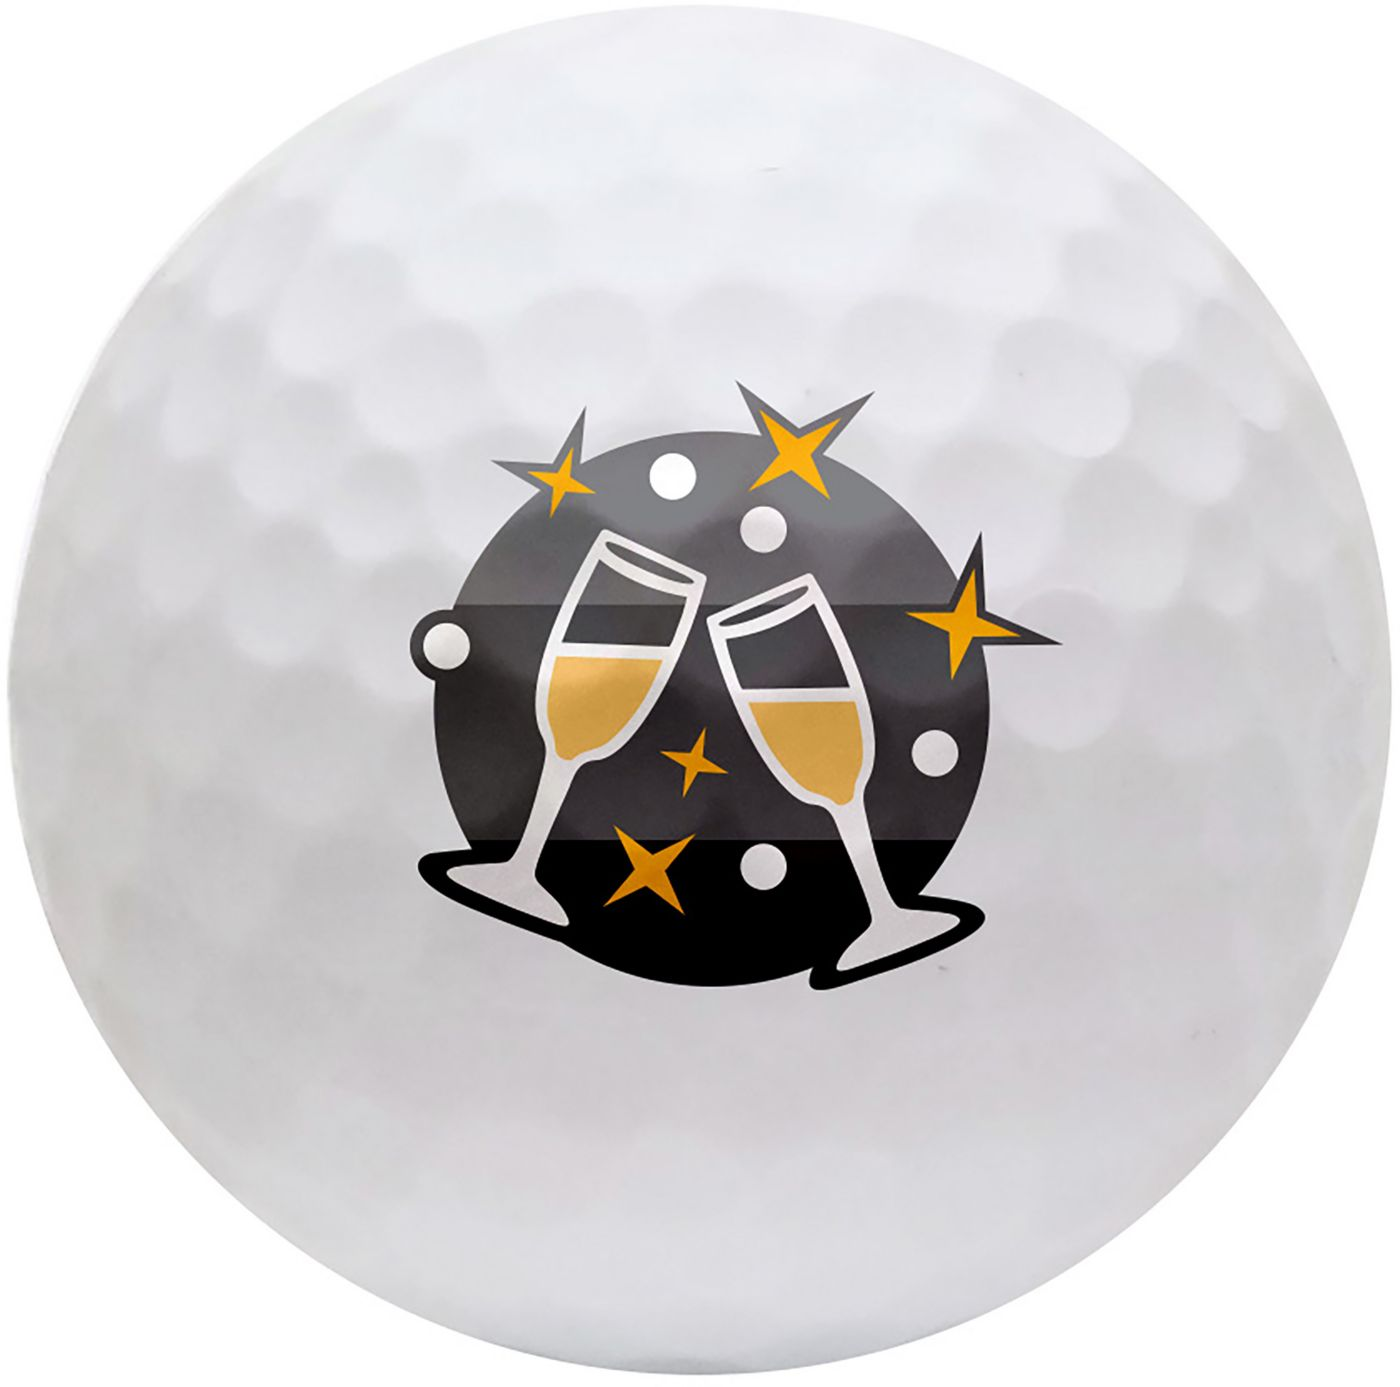 TaylorMade 2019 TP5x Holiday Novelty Golf Balls